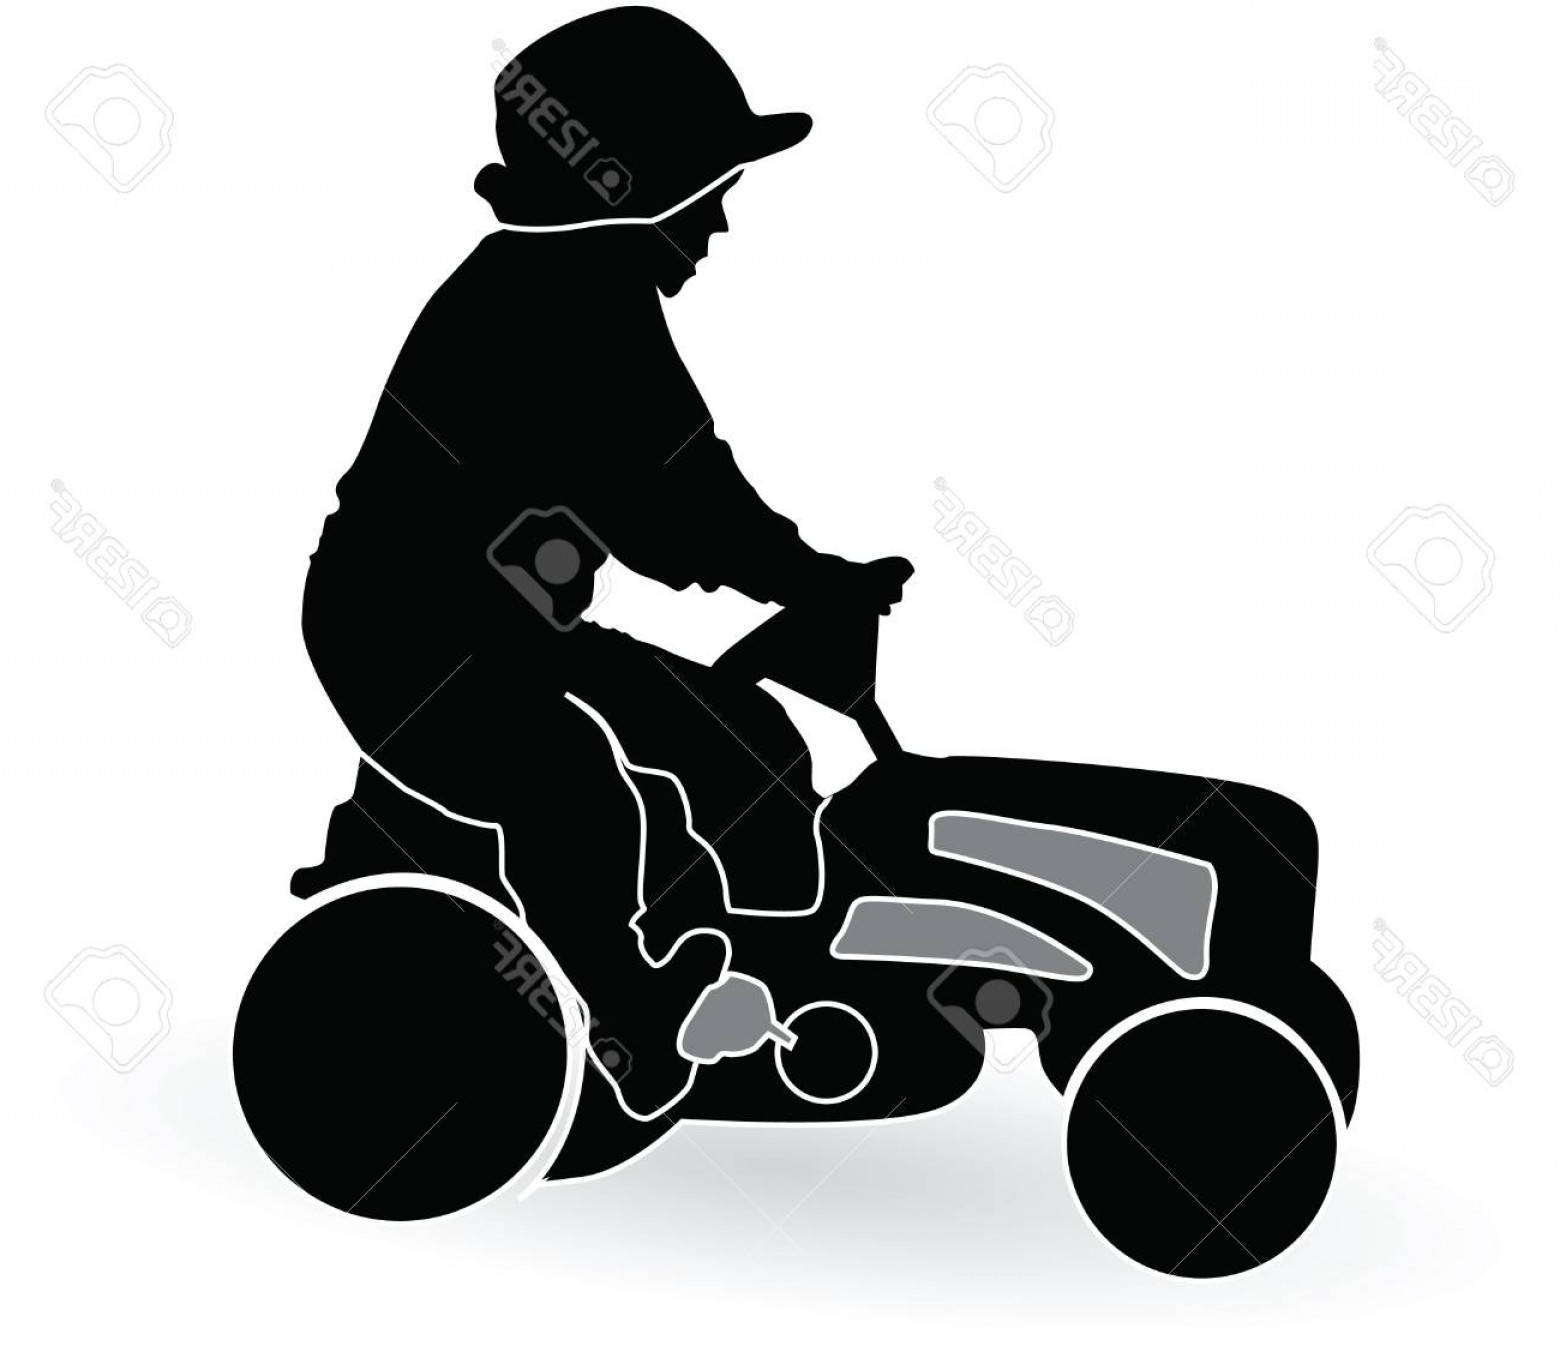 Tractor Silhouette Vector Art: Photoboy Driving A Tractor Silhouette Vector